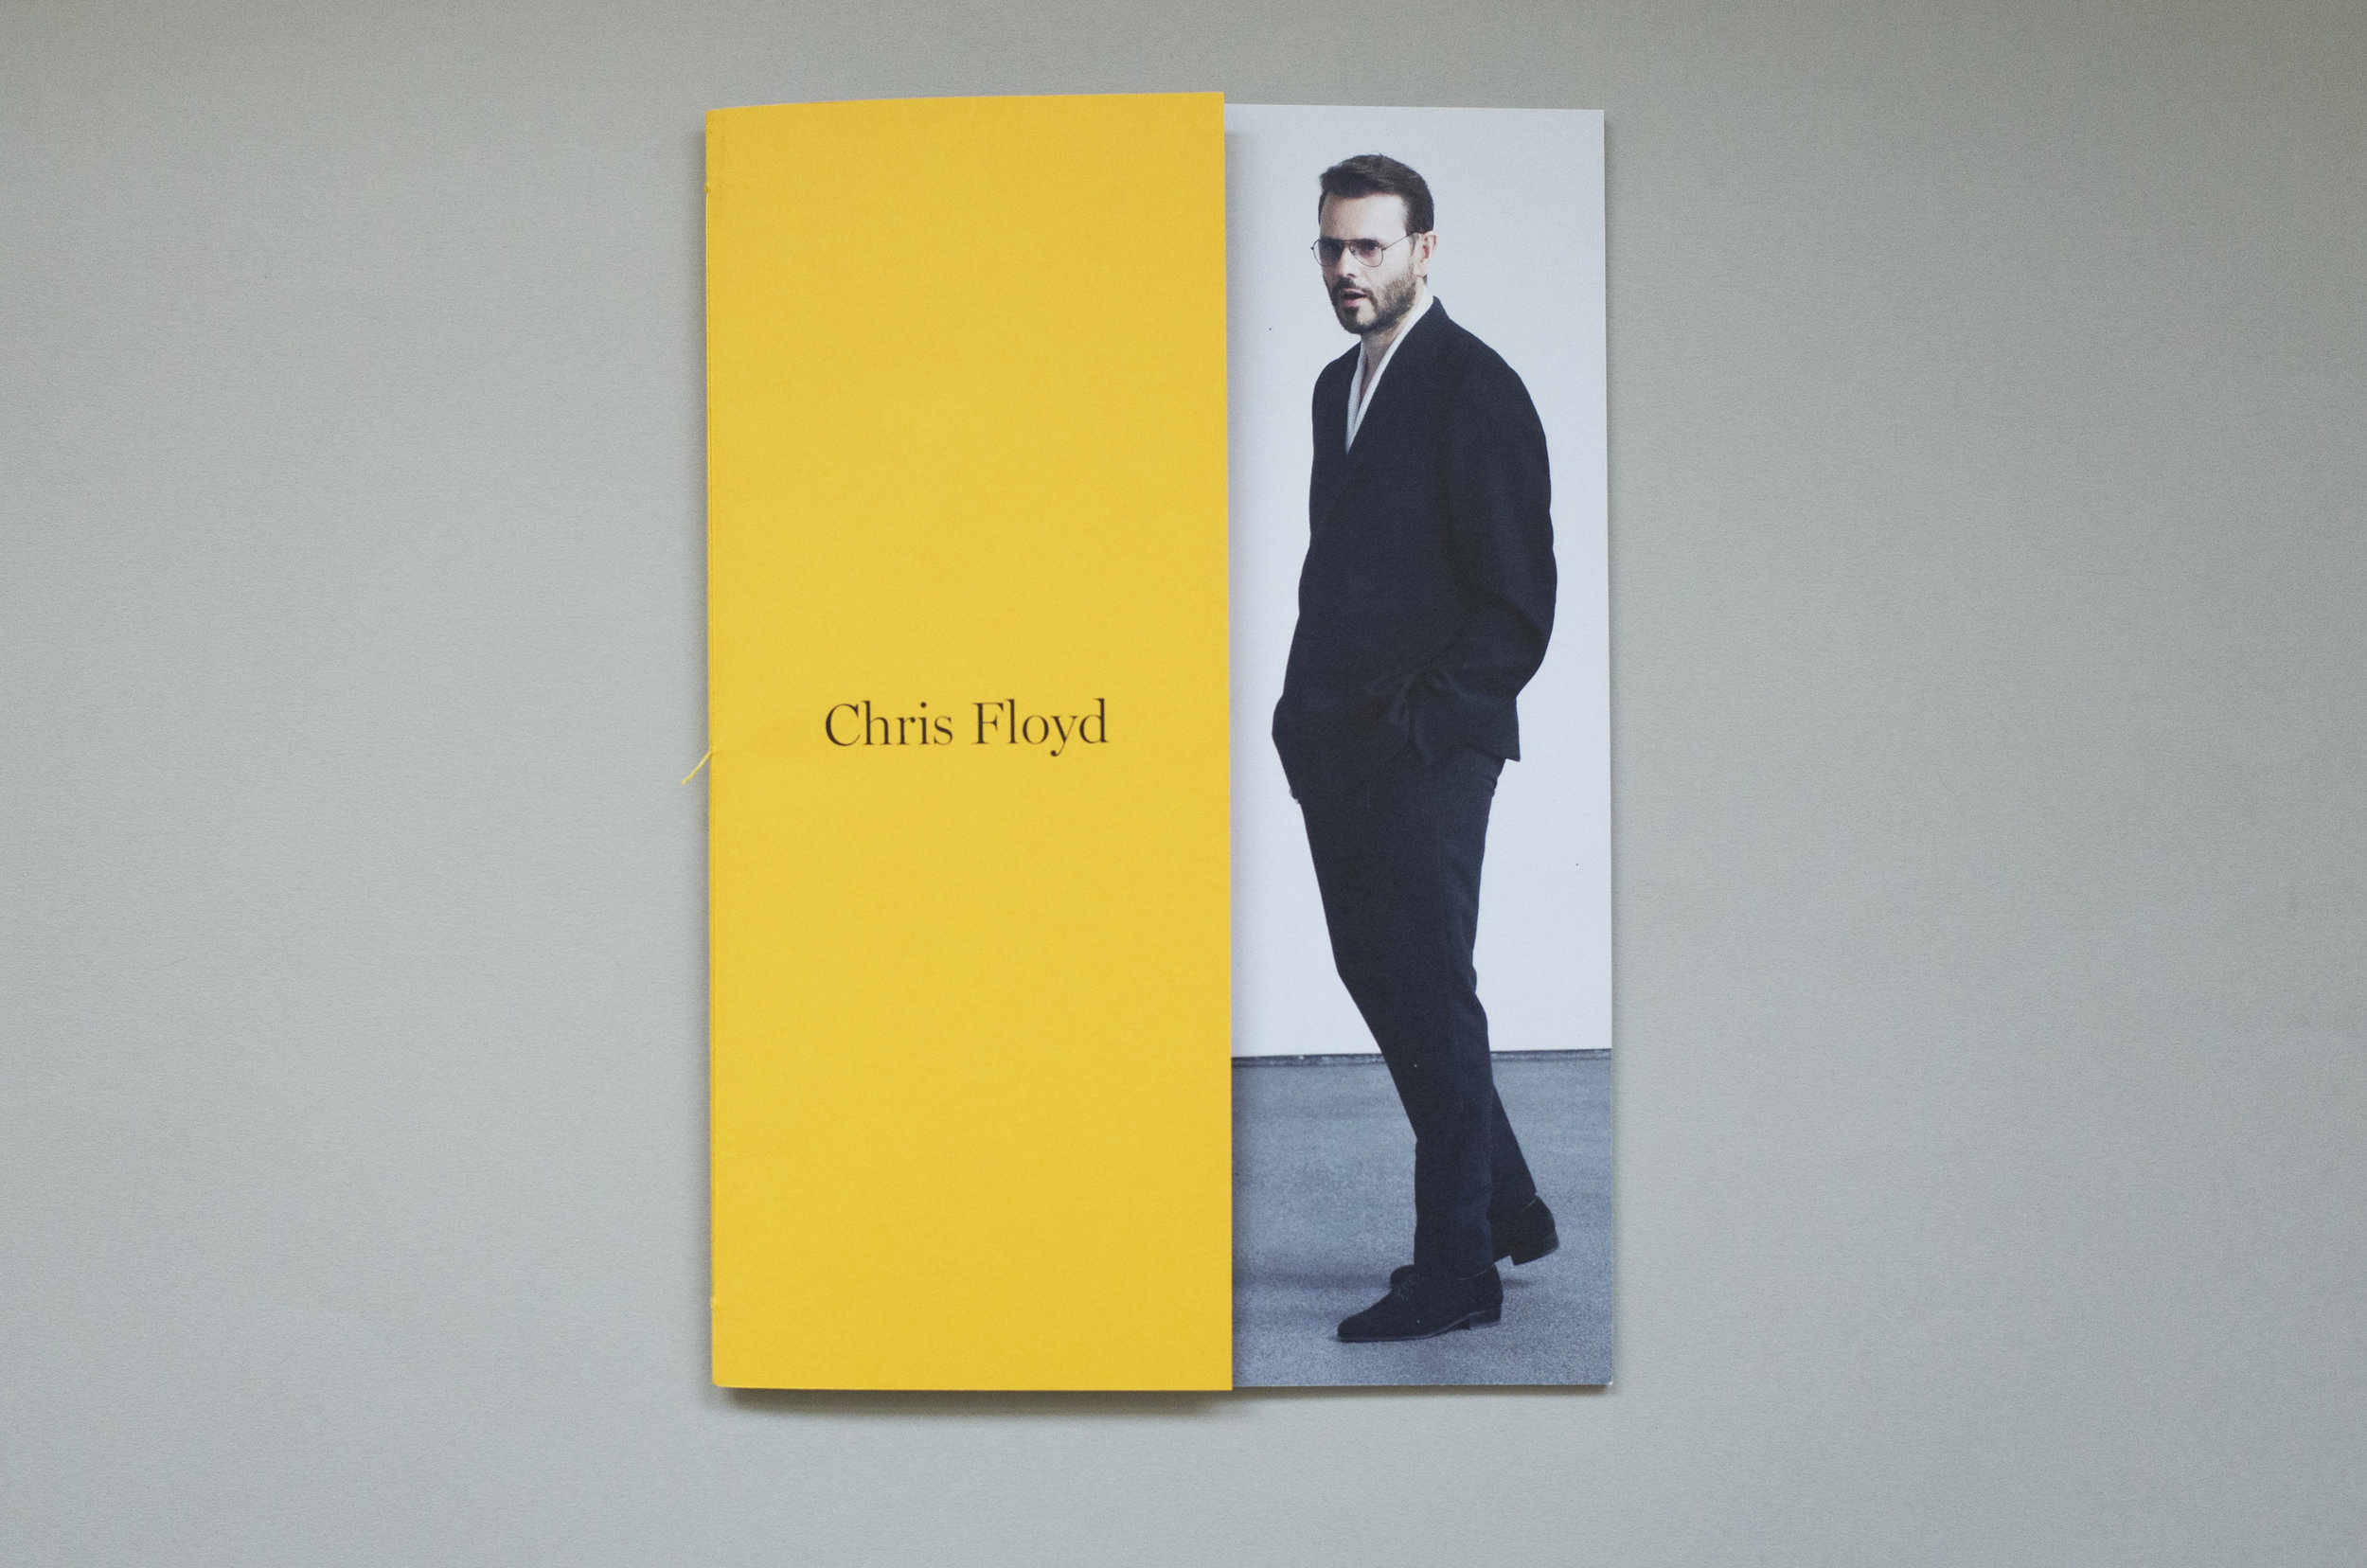 Chris Floyd promotional book, Front cover, GFSmith Colorplan paper, Carlo Brandelli